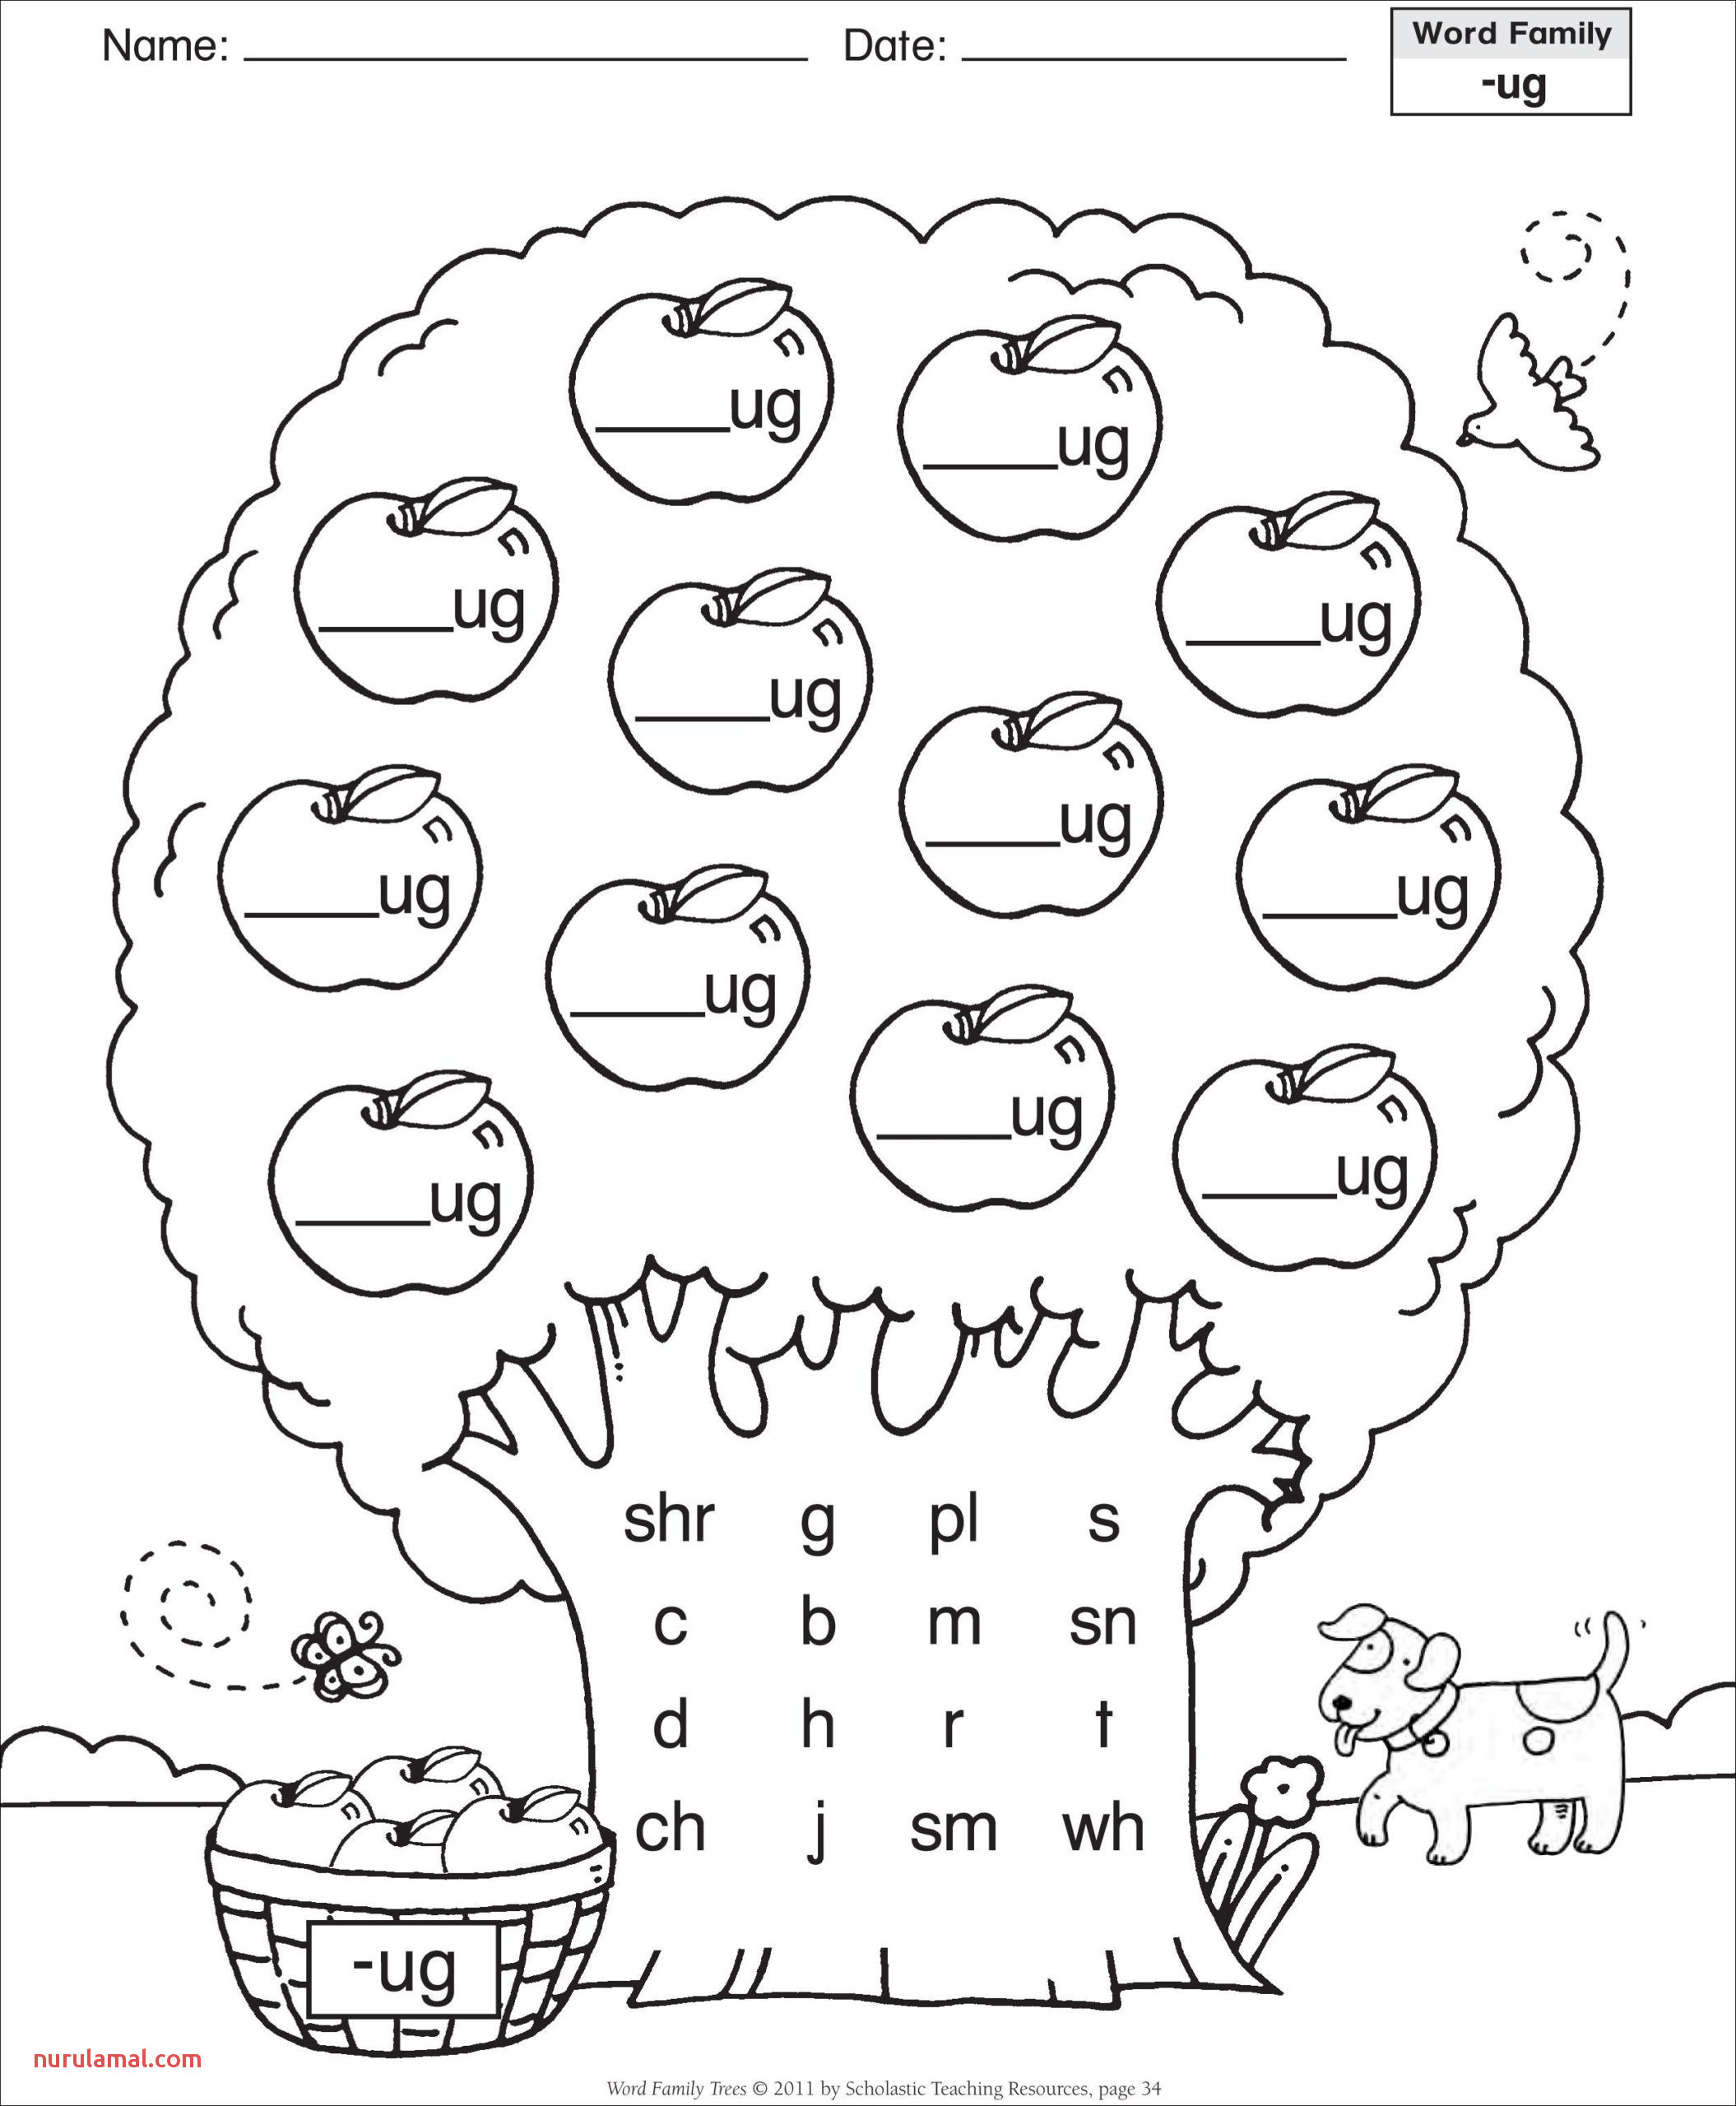 Multiplying Fractions Visual Worksheet Worksheets Free Water Cycle Worksheets for 5th Grade